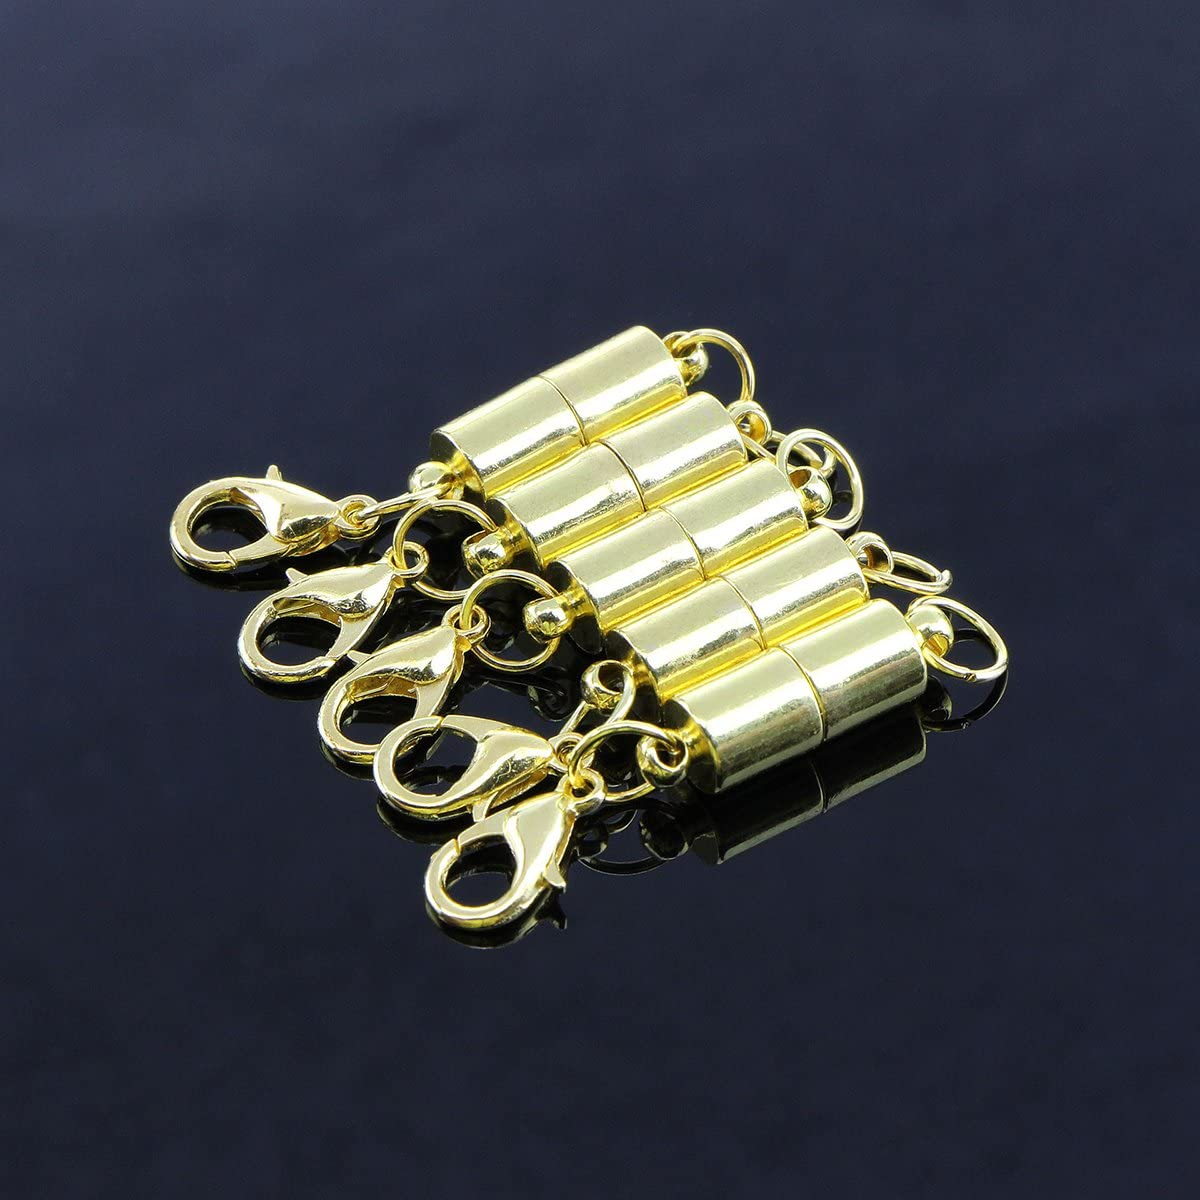 ULTNICE 20Pcs Gold Magnetic Lobster Clasp for Necklace Bracelet Jewelry Making